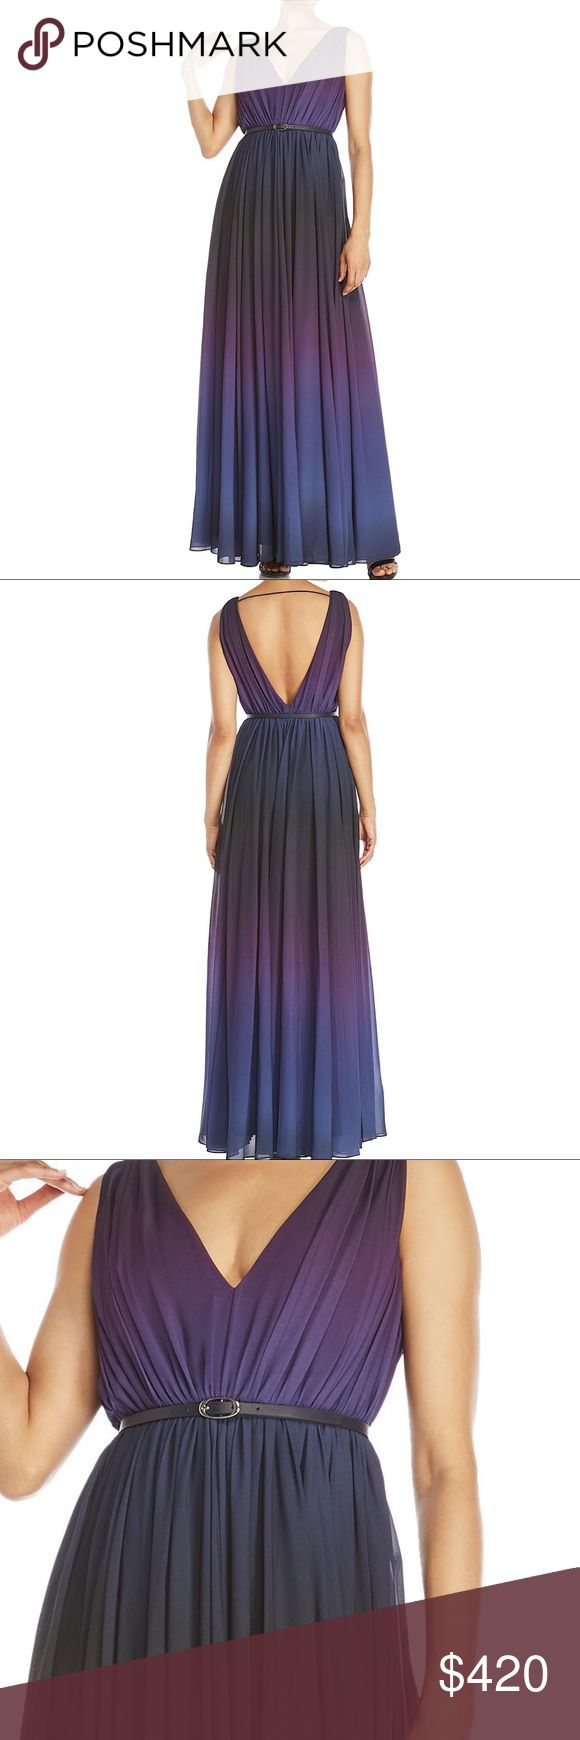 Raoul Sarina Belted Gown V-neck and back, sleeveless, pleated woven construction Ombré effect, side zip closure, horizontal back strap, interior lining. Belt included. BRAND NEW WITH TAG! Photos will be available on the upcoming weekend 😘 Raoul Dresses Maxi